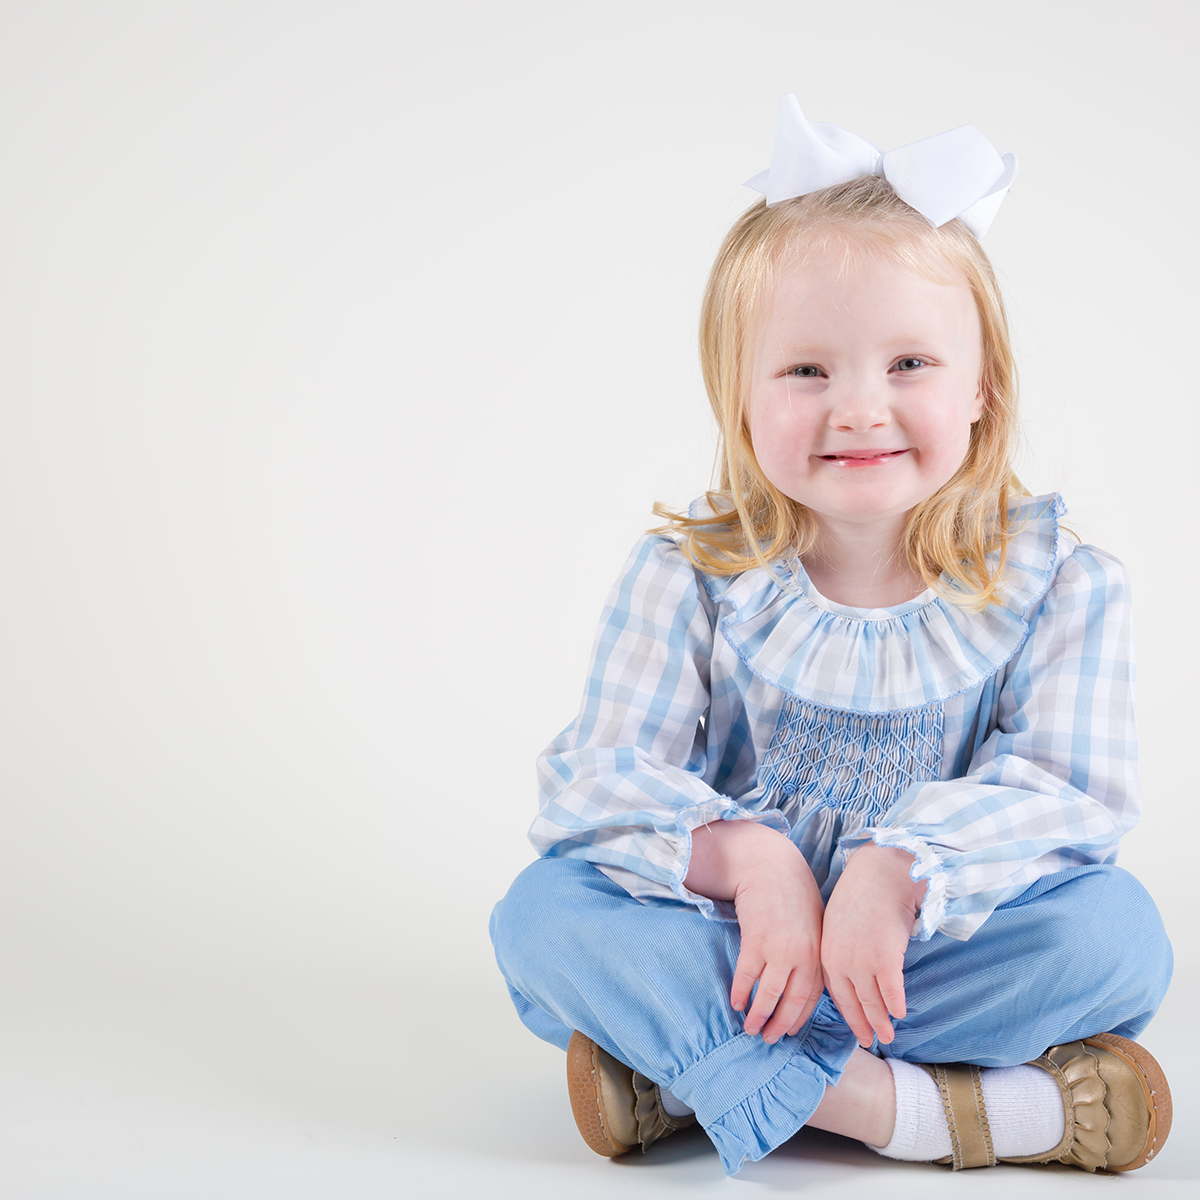 Birmigham Daycare Portrait Photographer